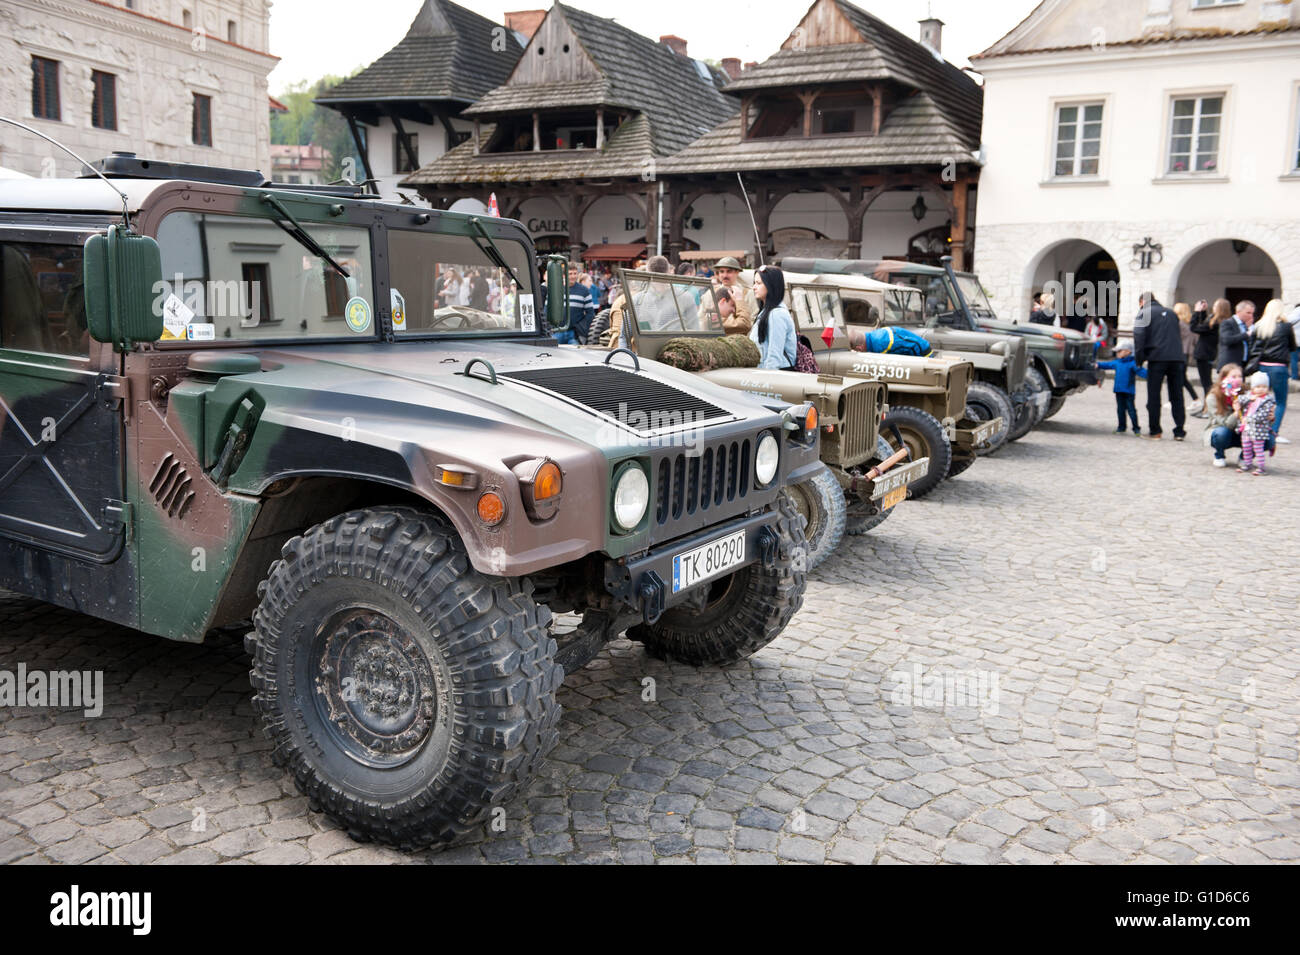 Willys in line at Rally VI military vehicles from World War II in Kazimierz Dolny, antique army cars event at the - Stock Image